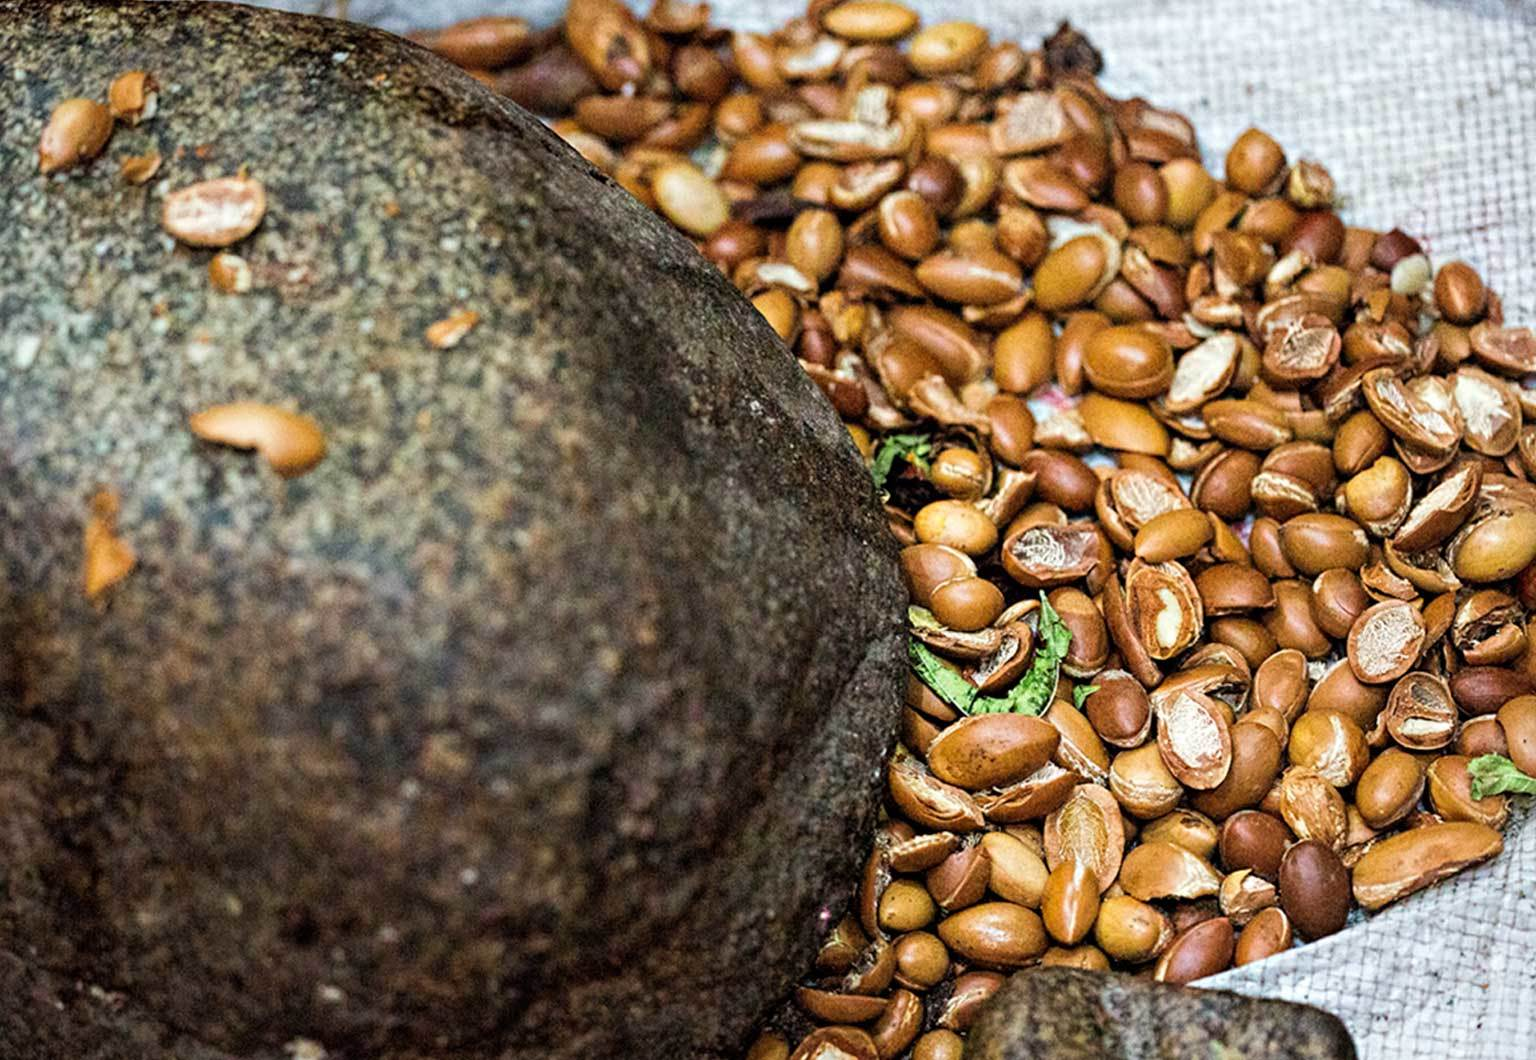 Image of Argan seeds - which comes from the Arganier spinosa tree.